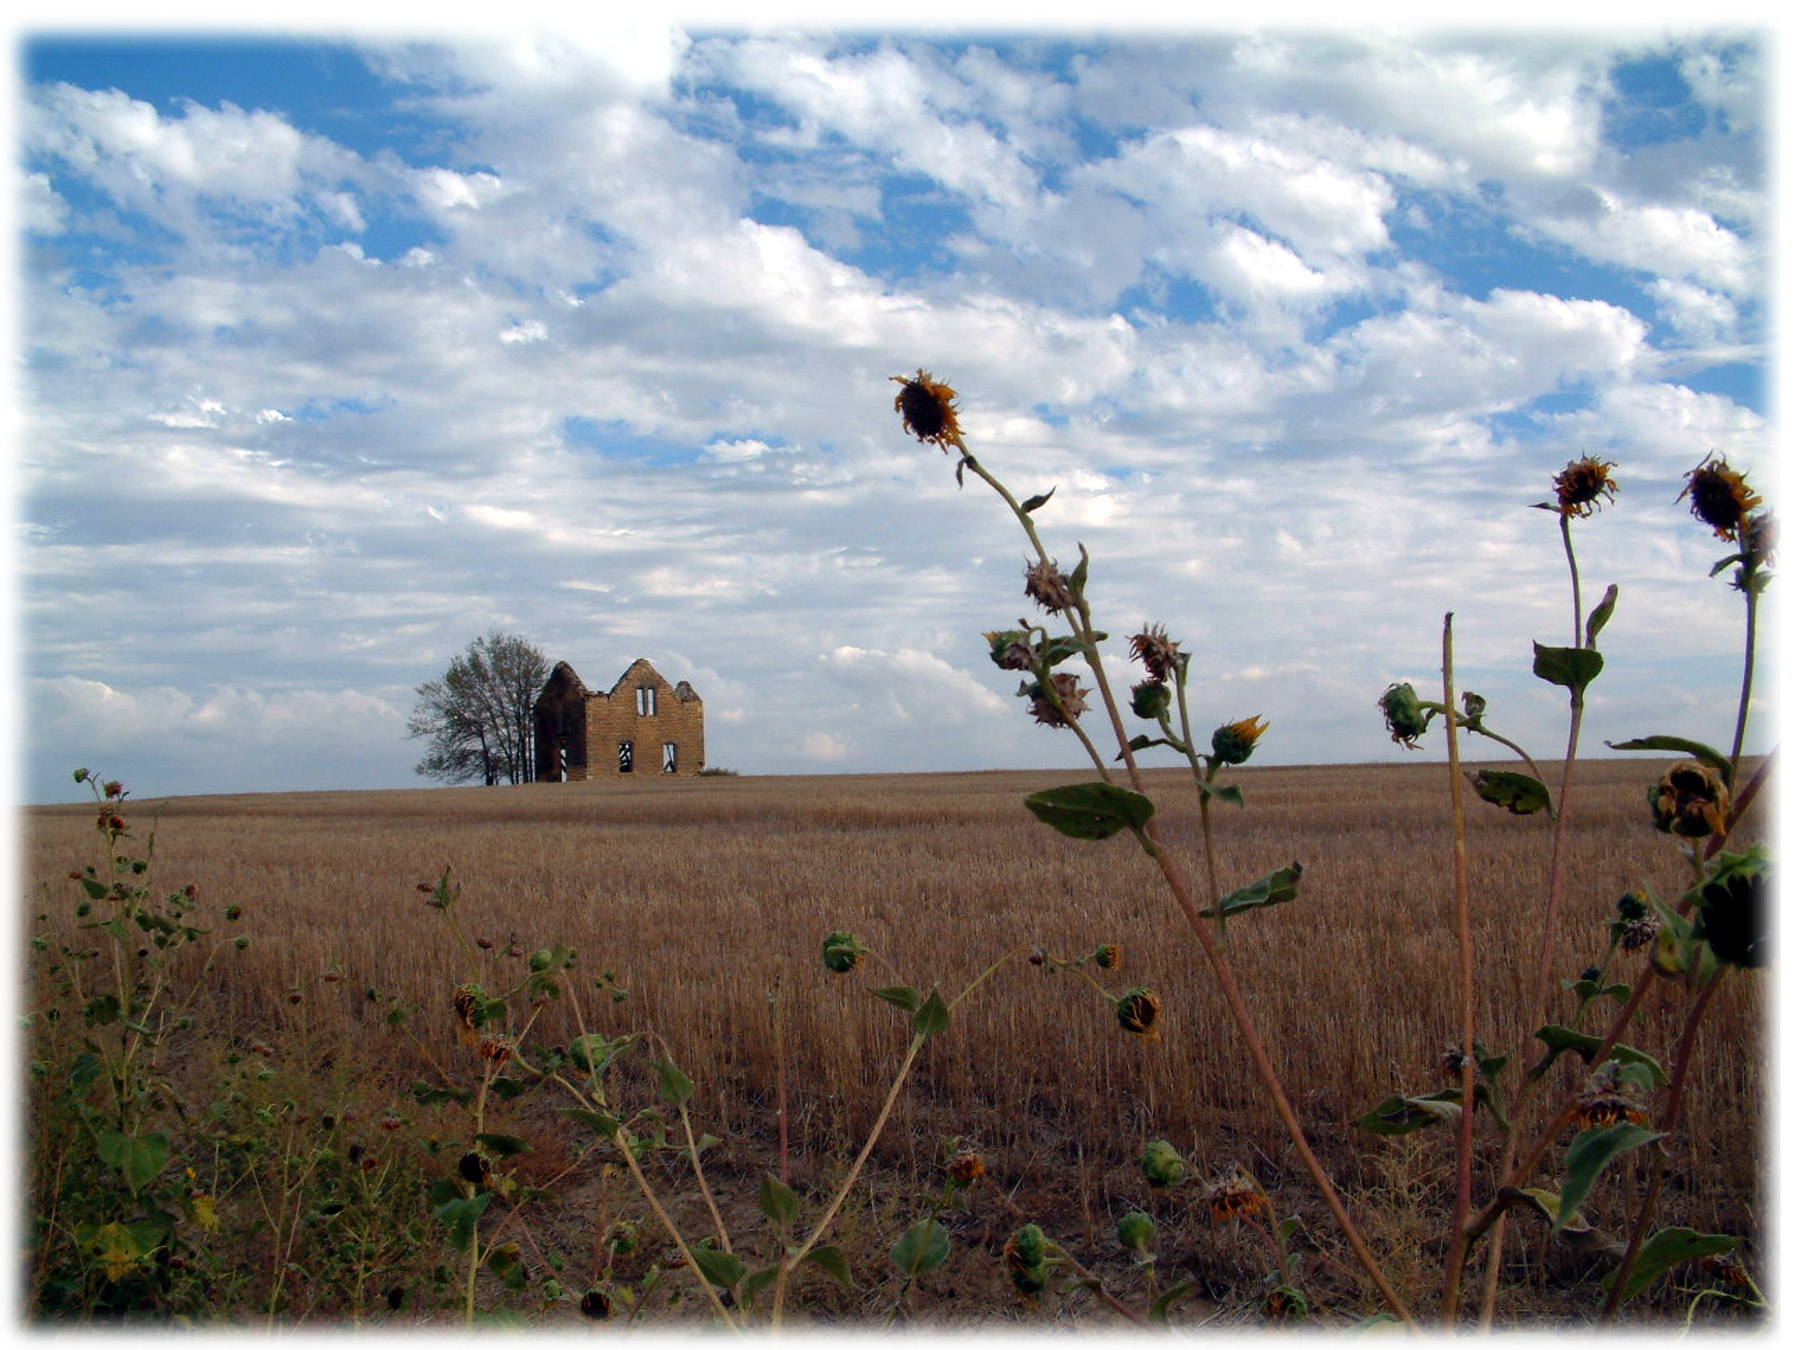 KANSAS-MEMORIES-PAST-website-jpg